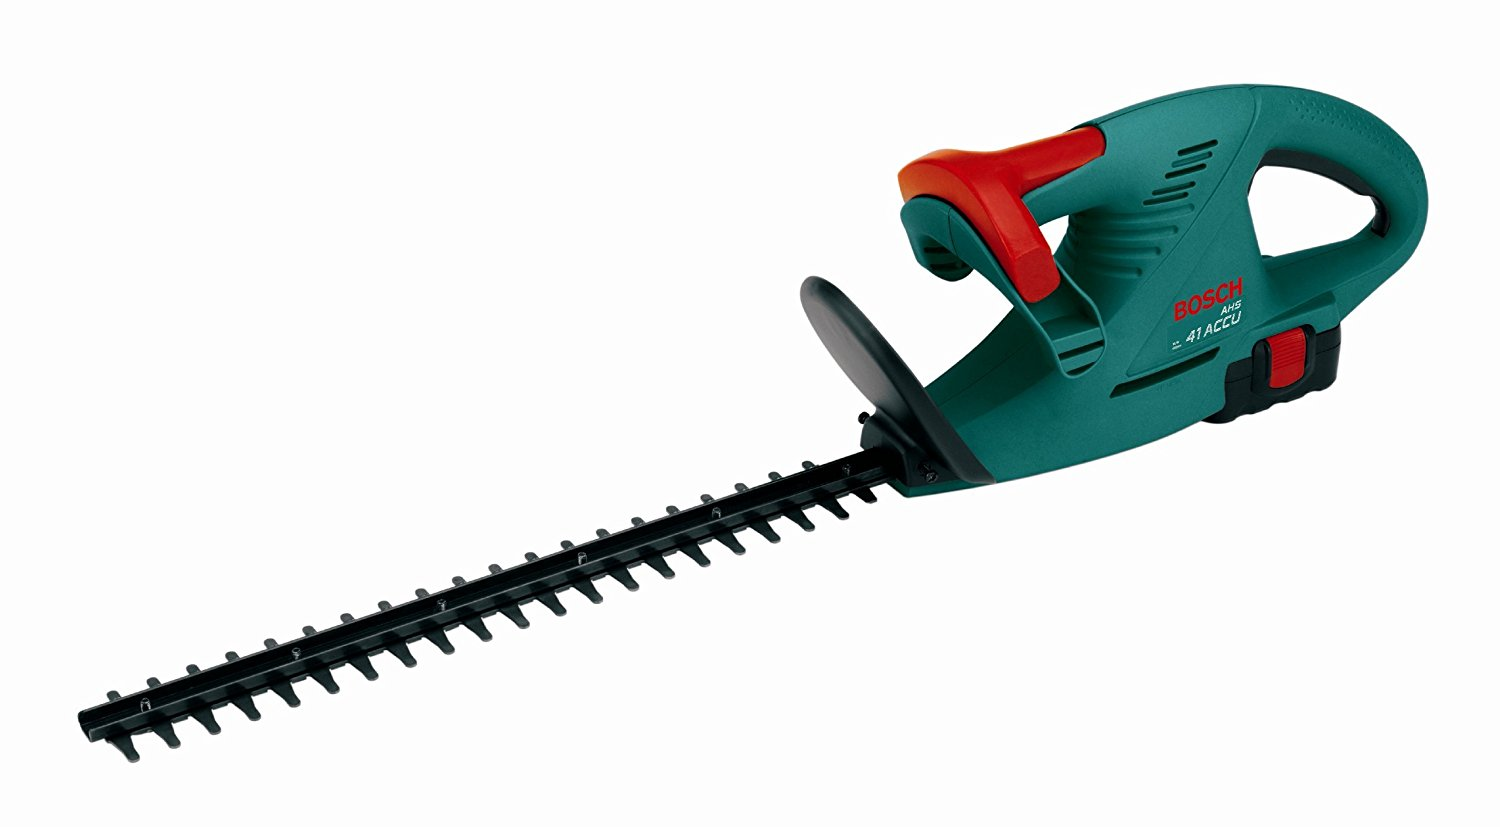 bosch ahs 41 accu cordless hedgecutter 14 4v nicd battery charger around the clock offers. Black Bedroom Furniture Sets. Home Design Ideas